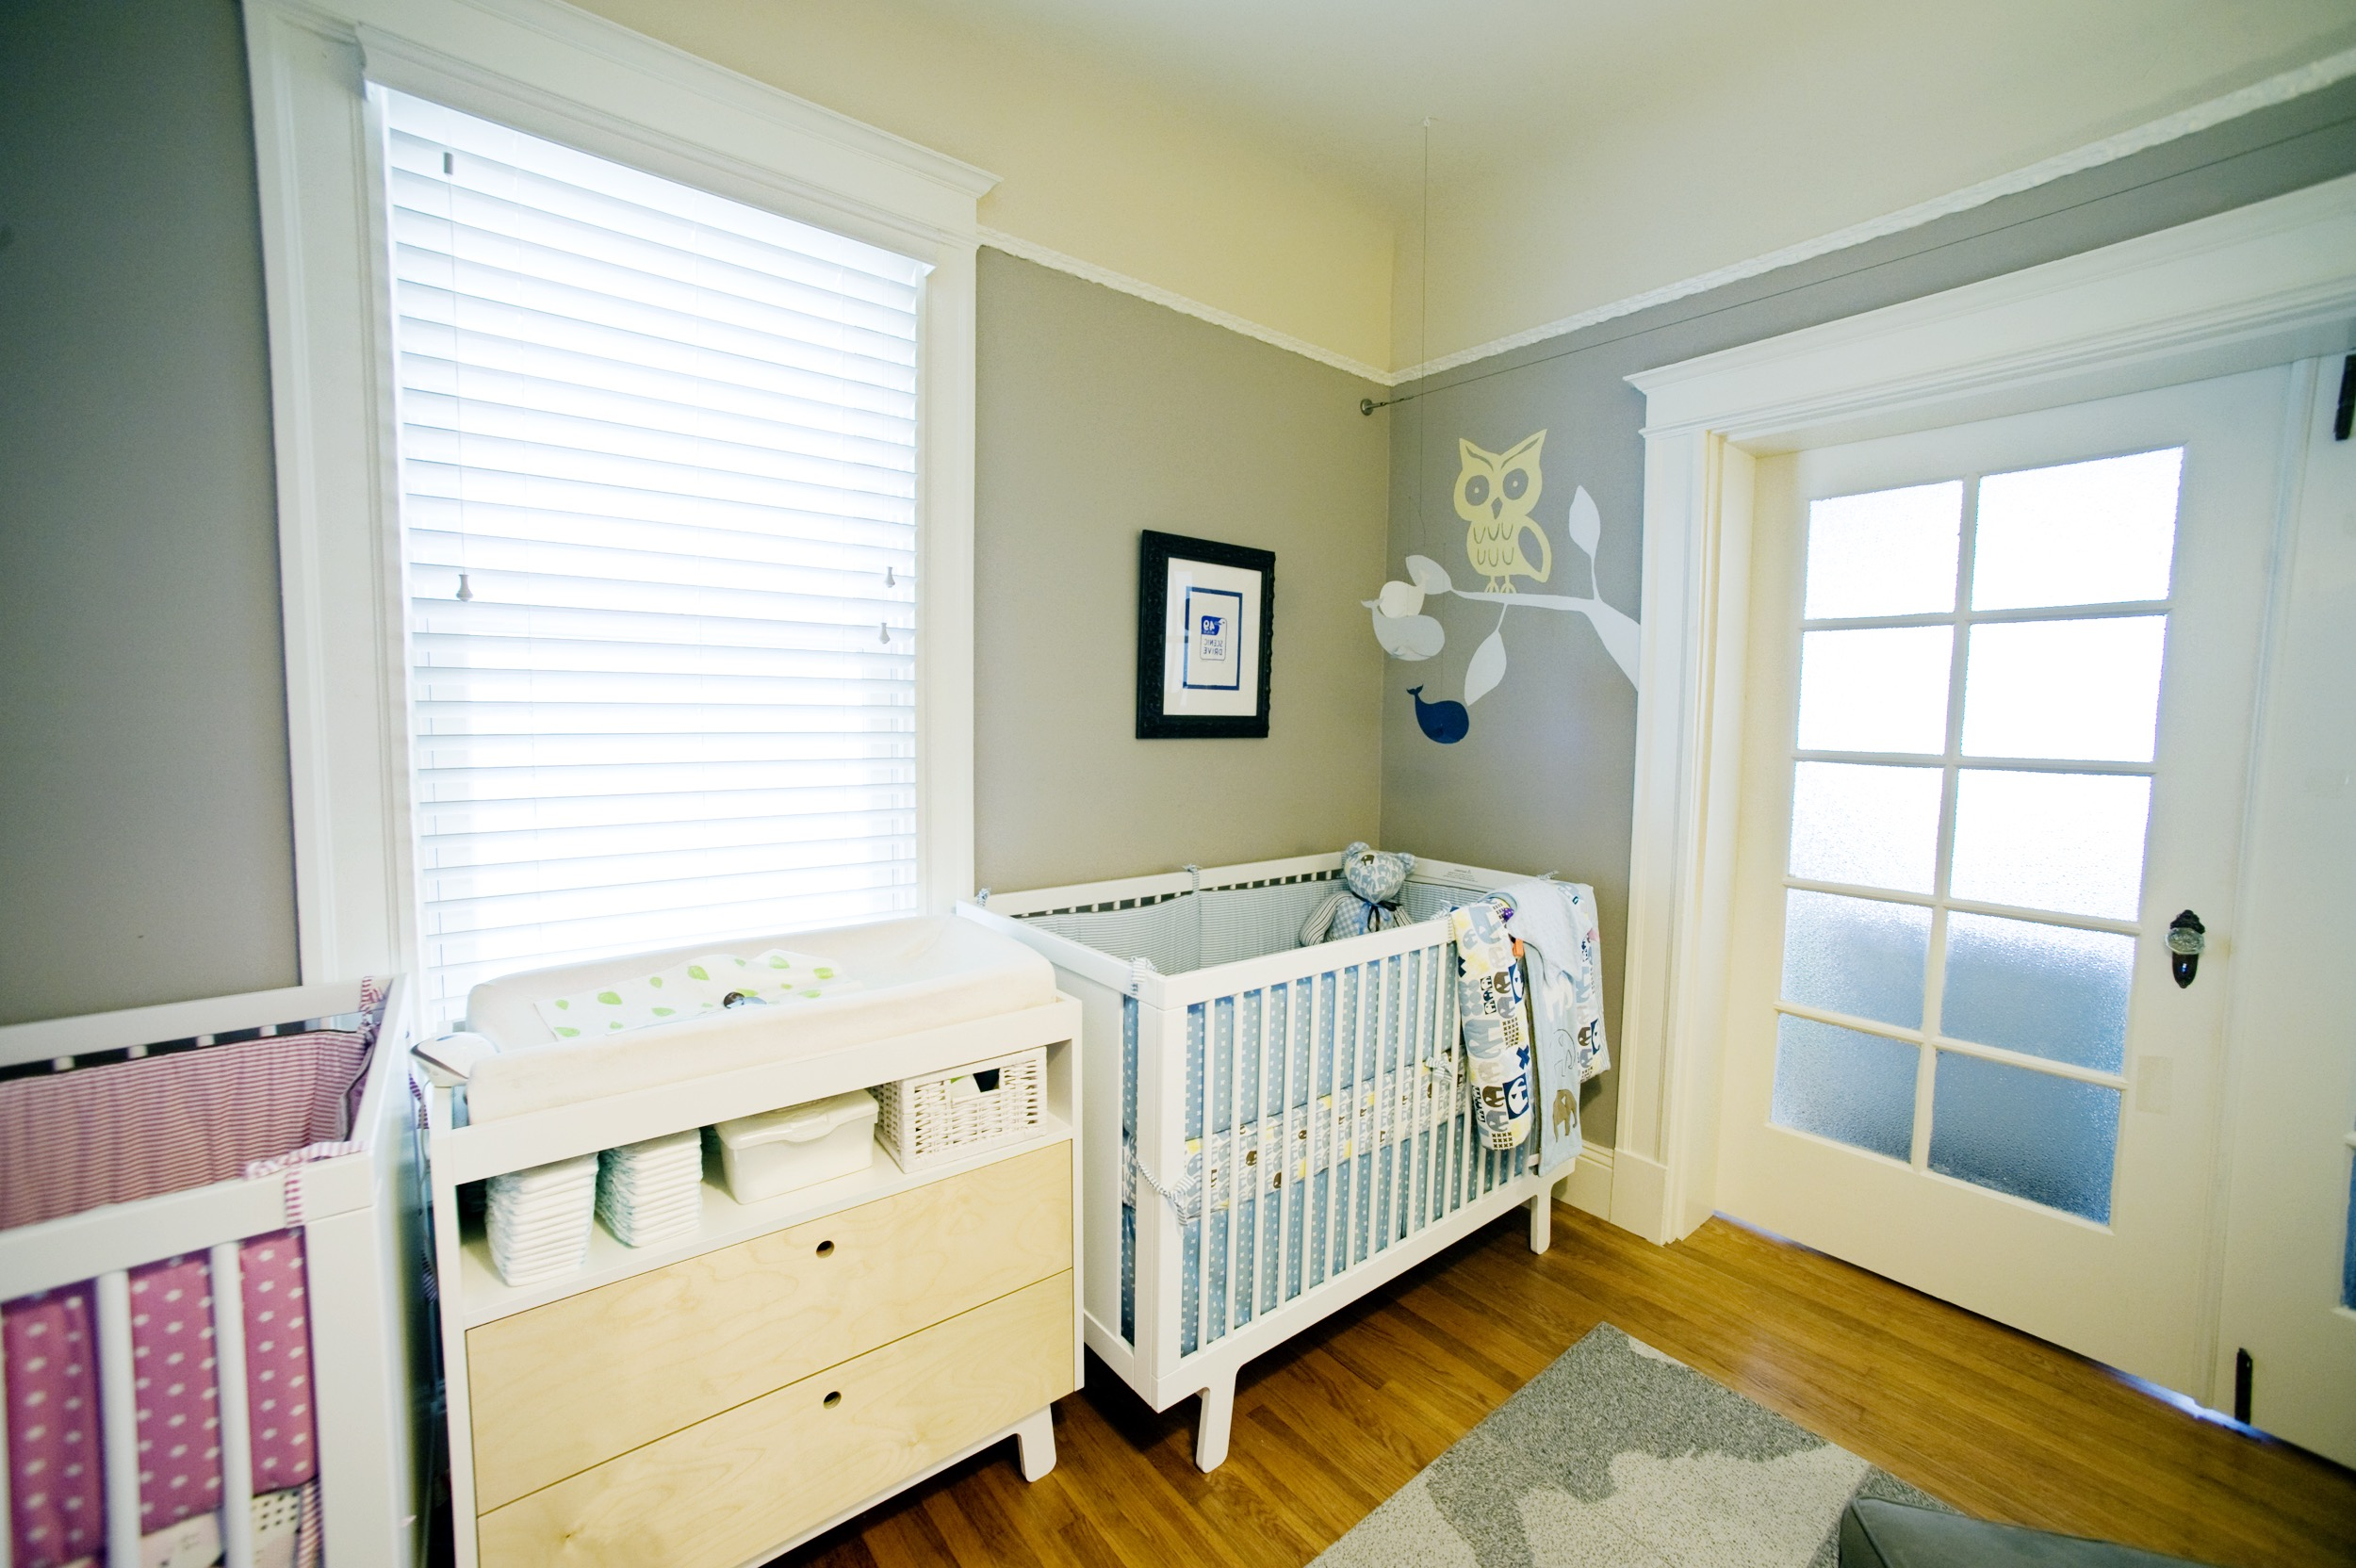 Modern Baby Room For Twins With Adorable Owl Artwork (Image 19 of 33)